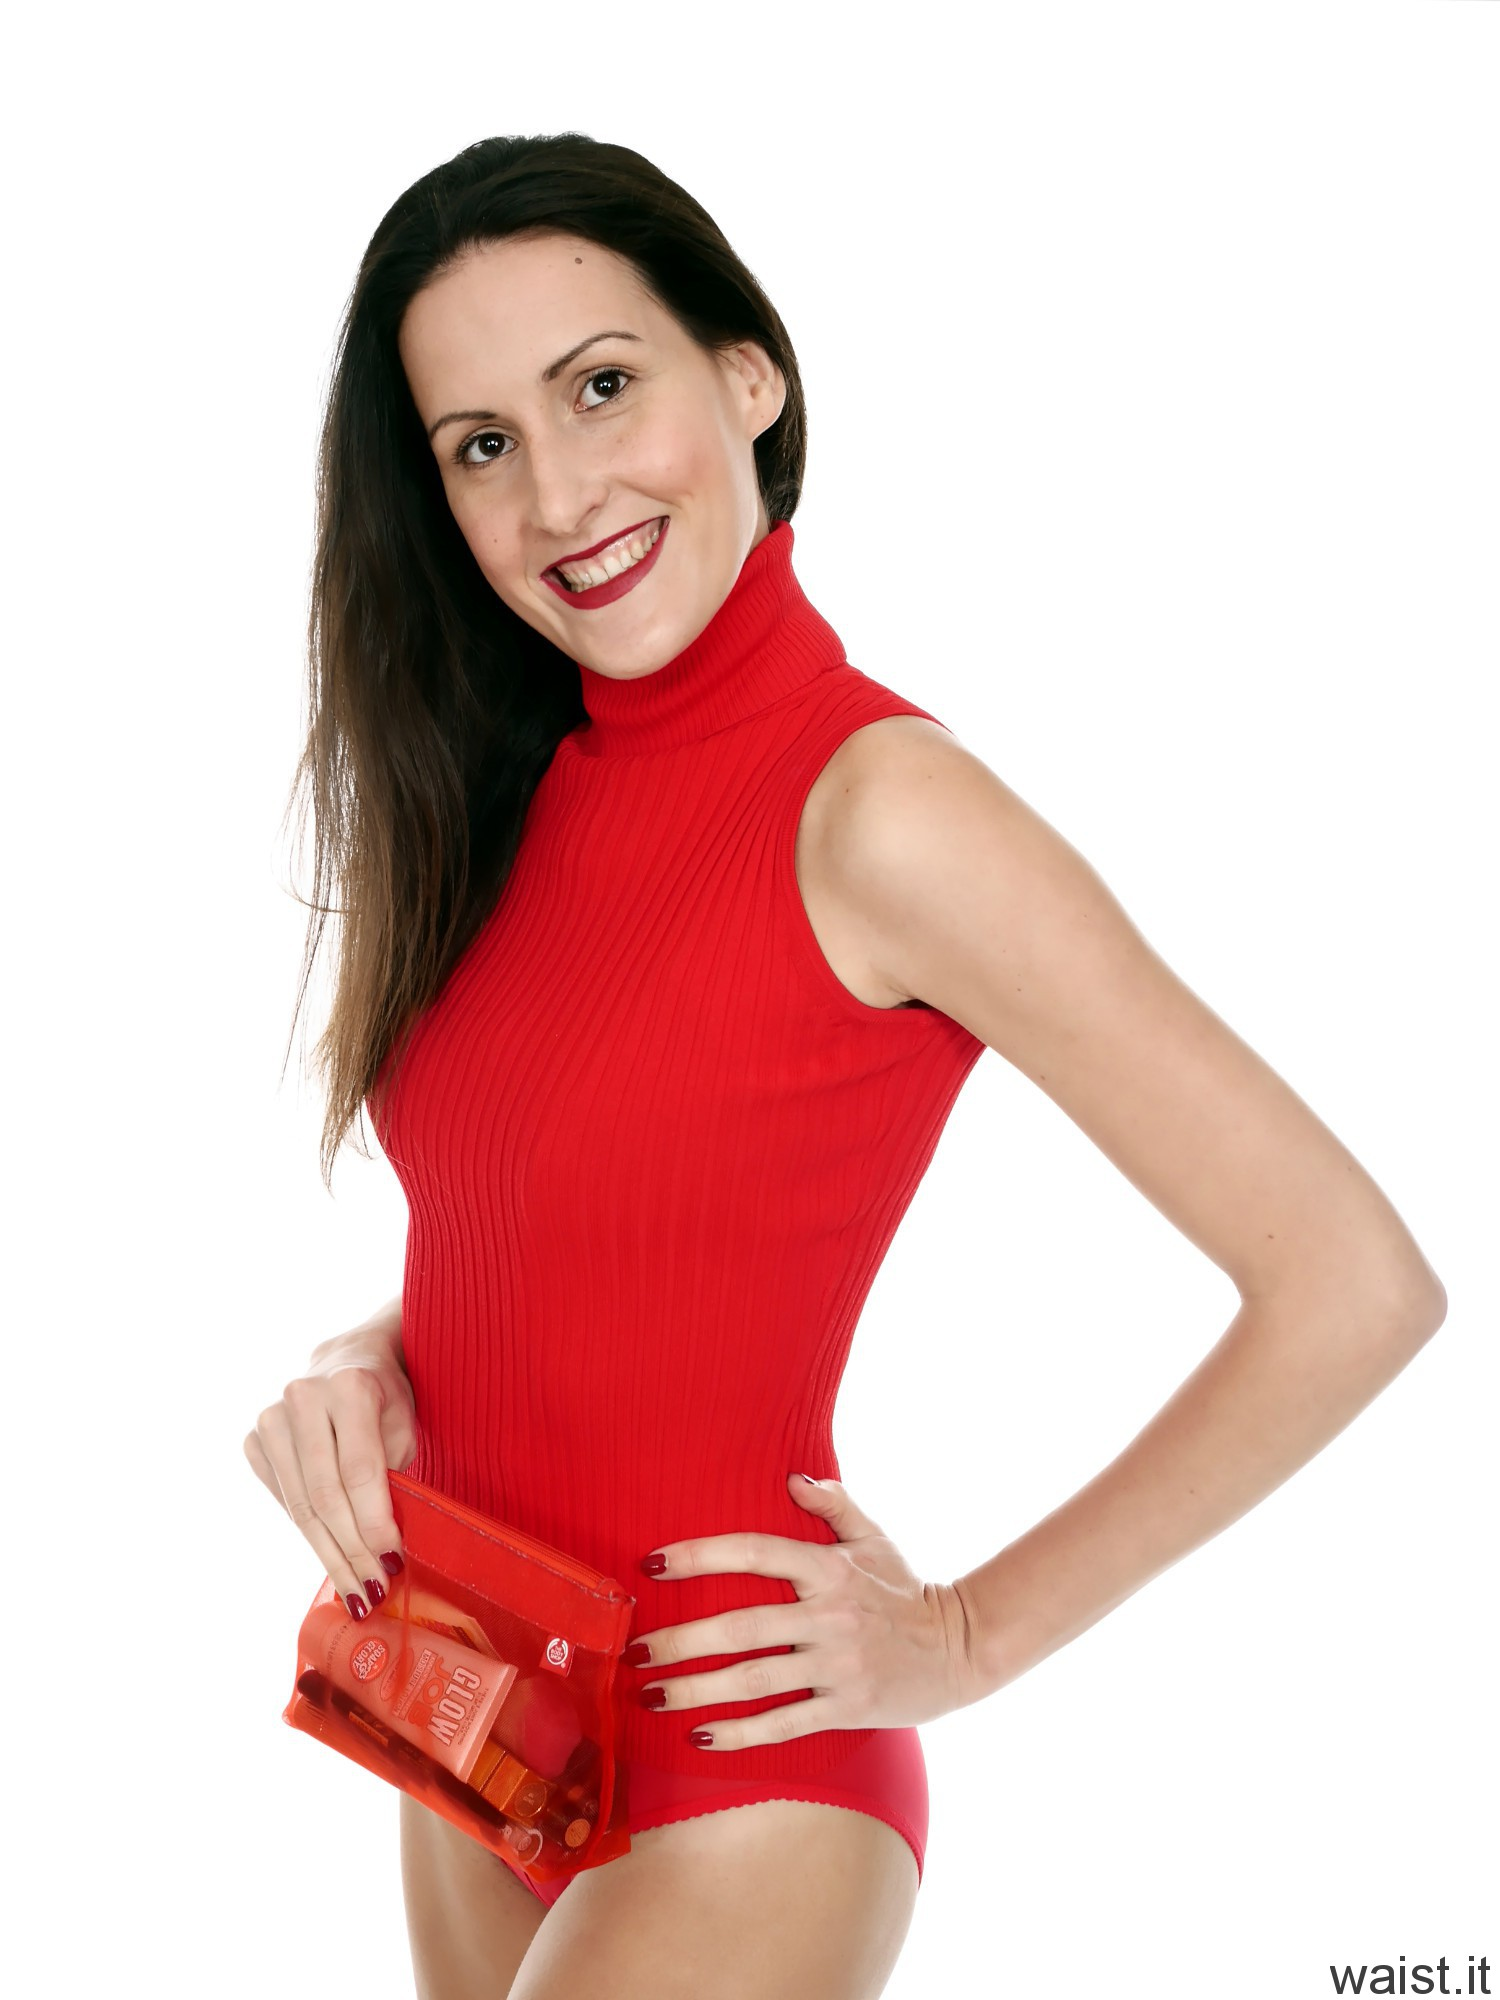 2016-11-20 MissGlamour in long red ribbed top and red pocket girdle worn as hotpants